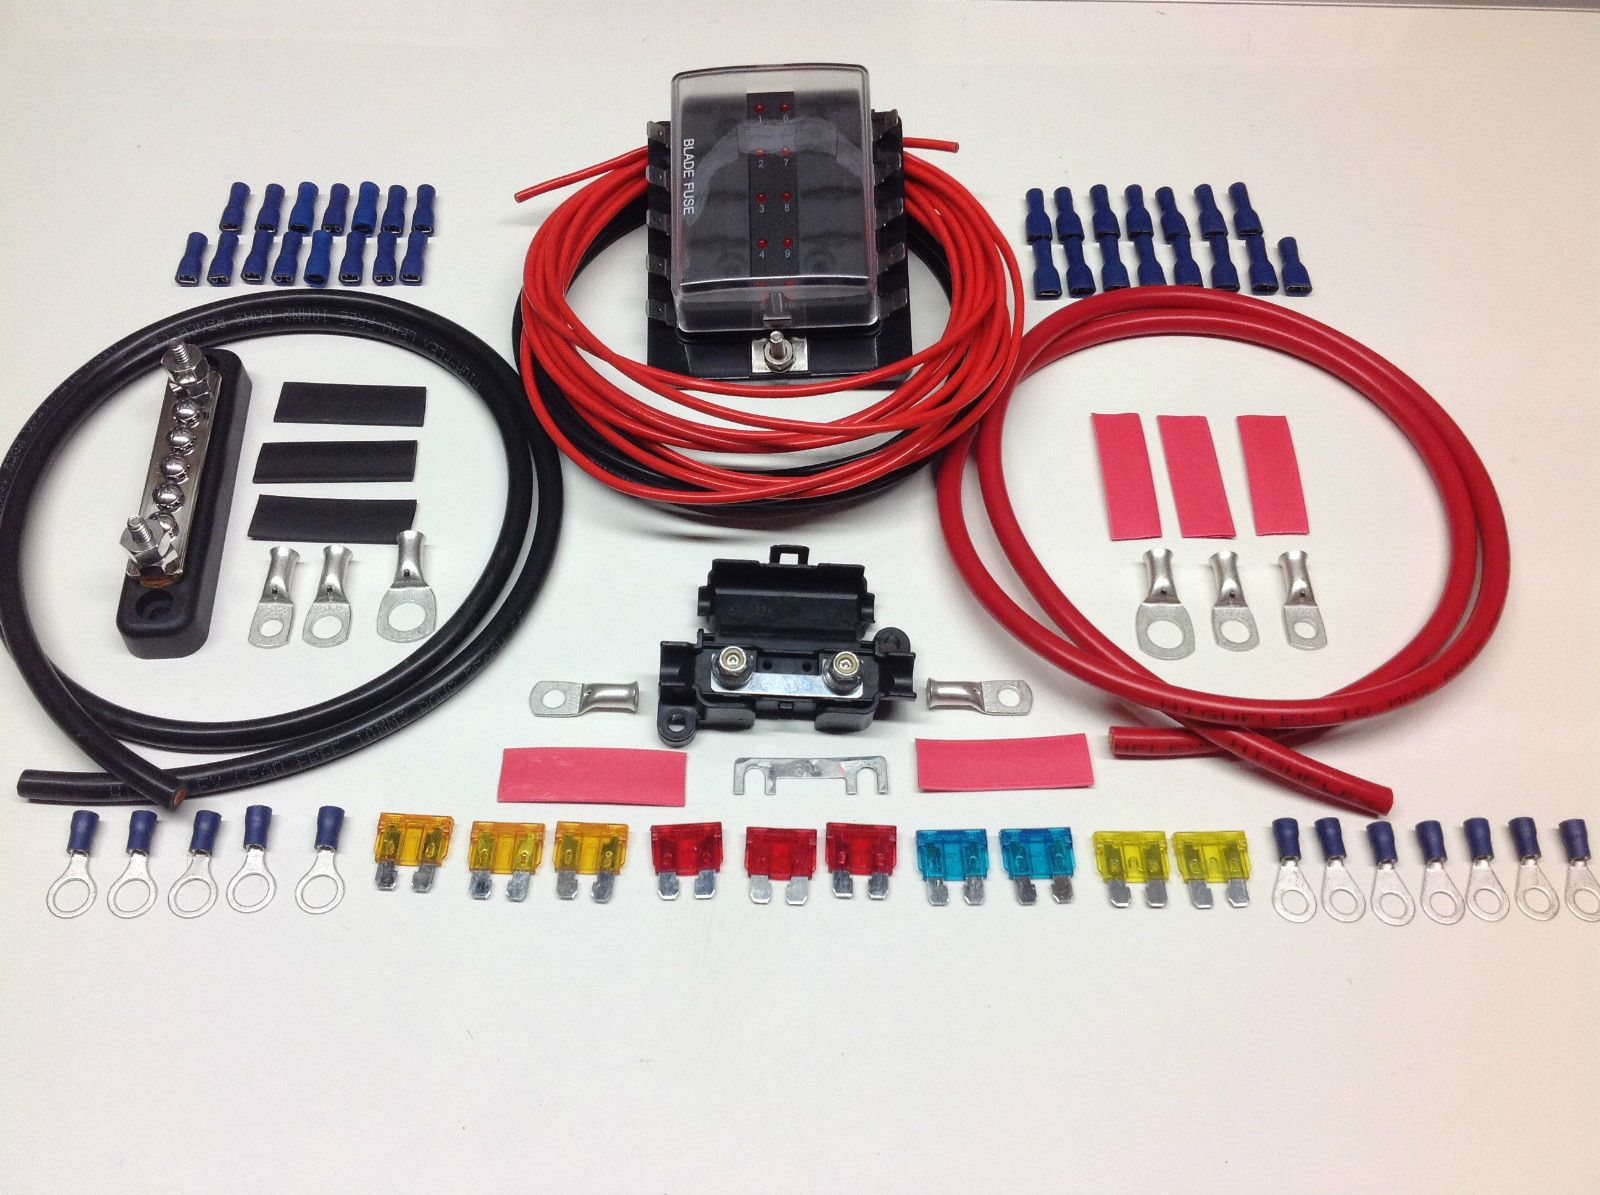 10 way fuse box distribution kit with negative bus bar cable terminals fuses 1097 p 10 way fuse box distribution kit with negative bus bar cable busbar fuse box at creativeand.co